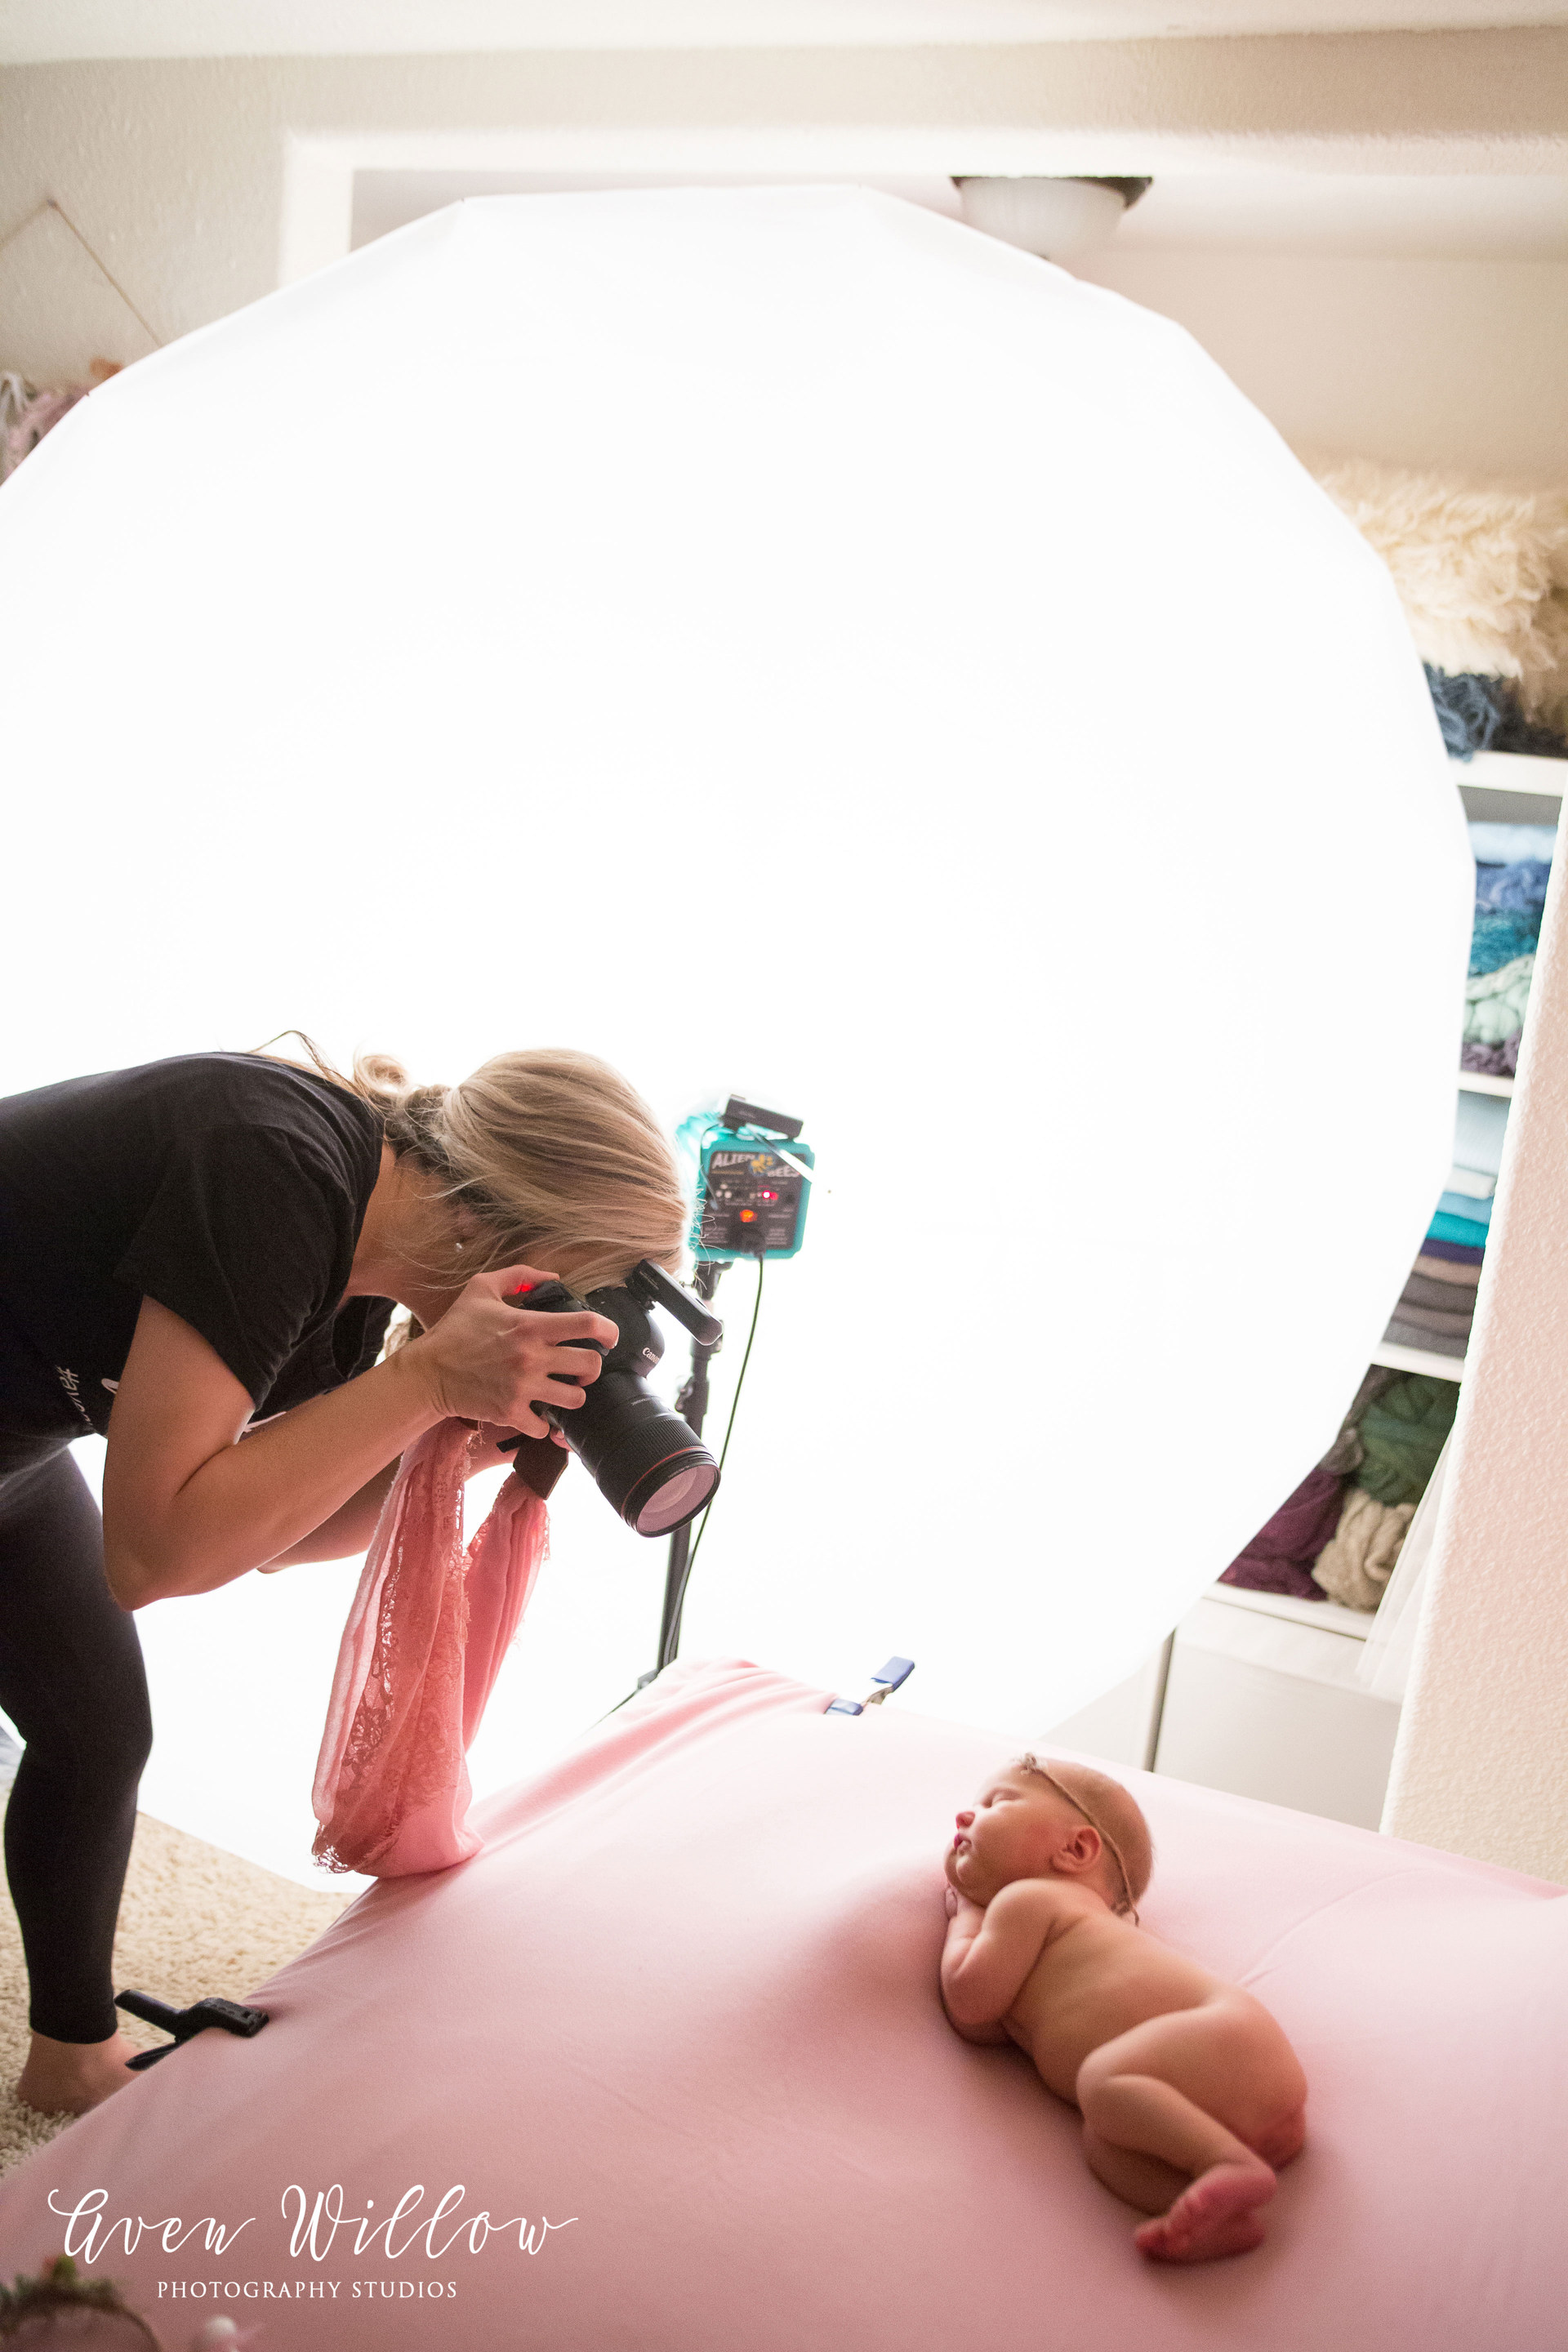 newborn photography studio